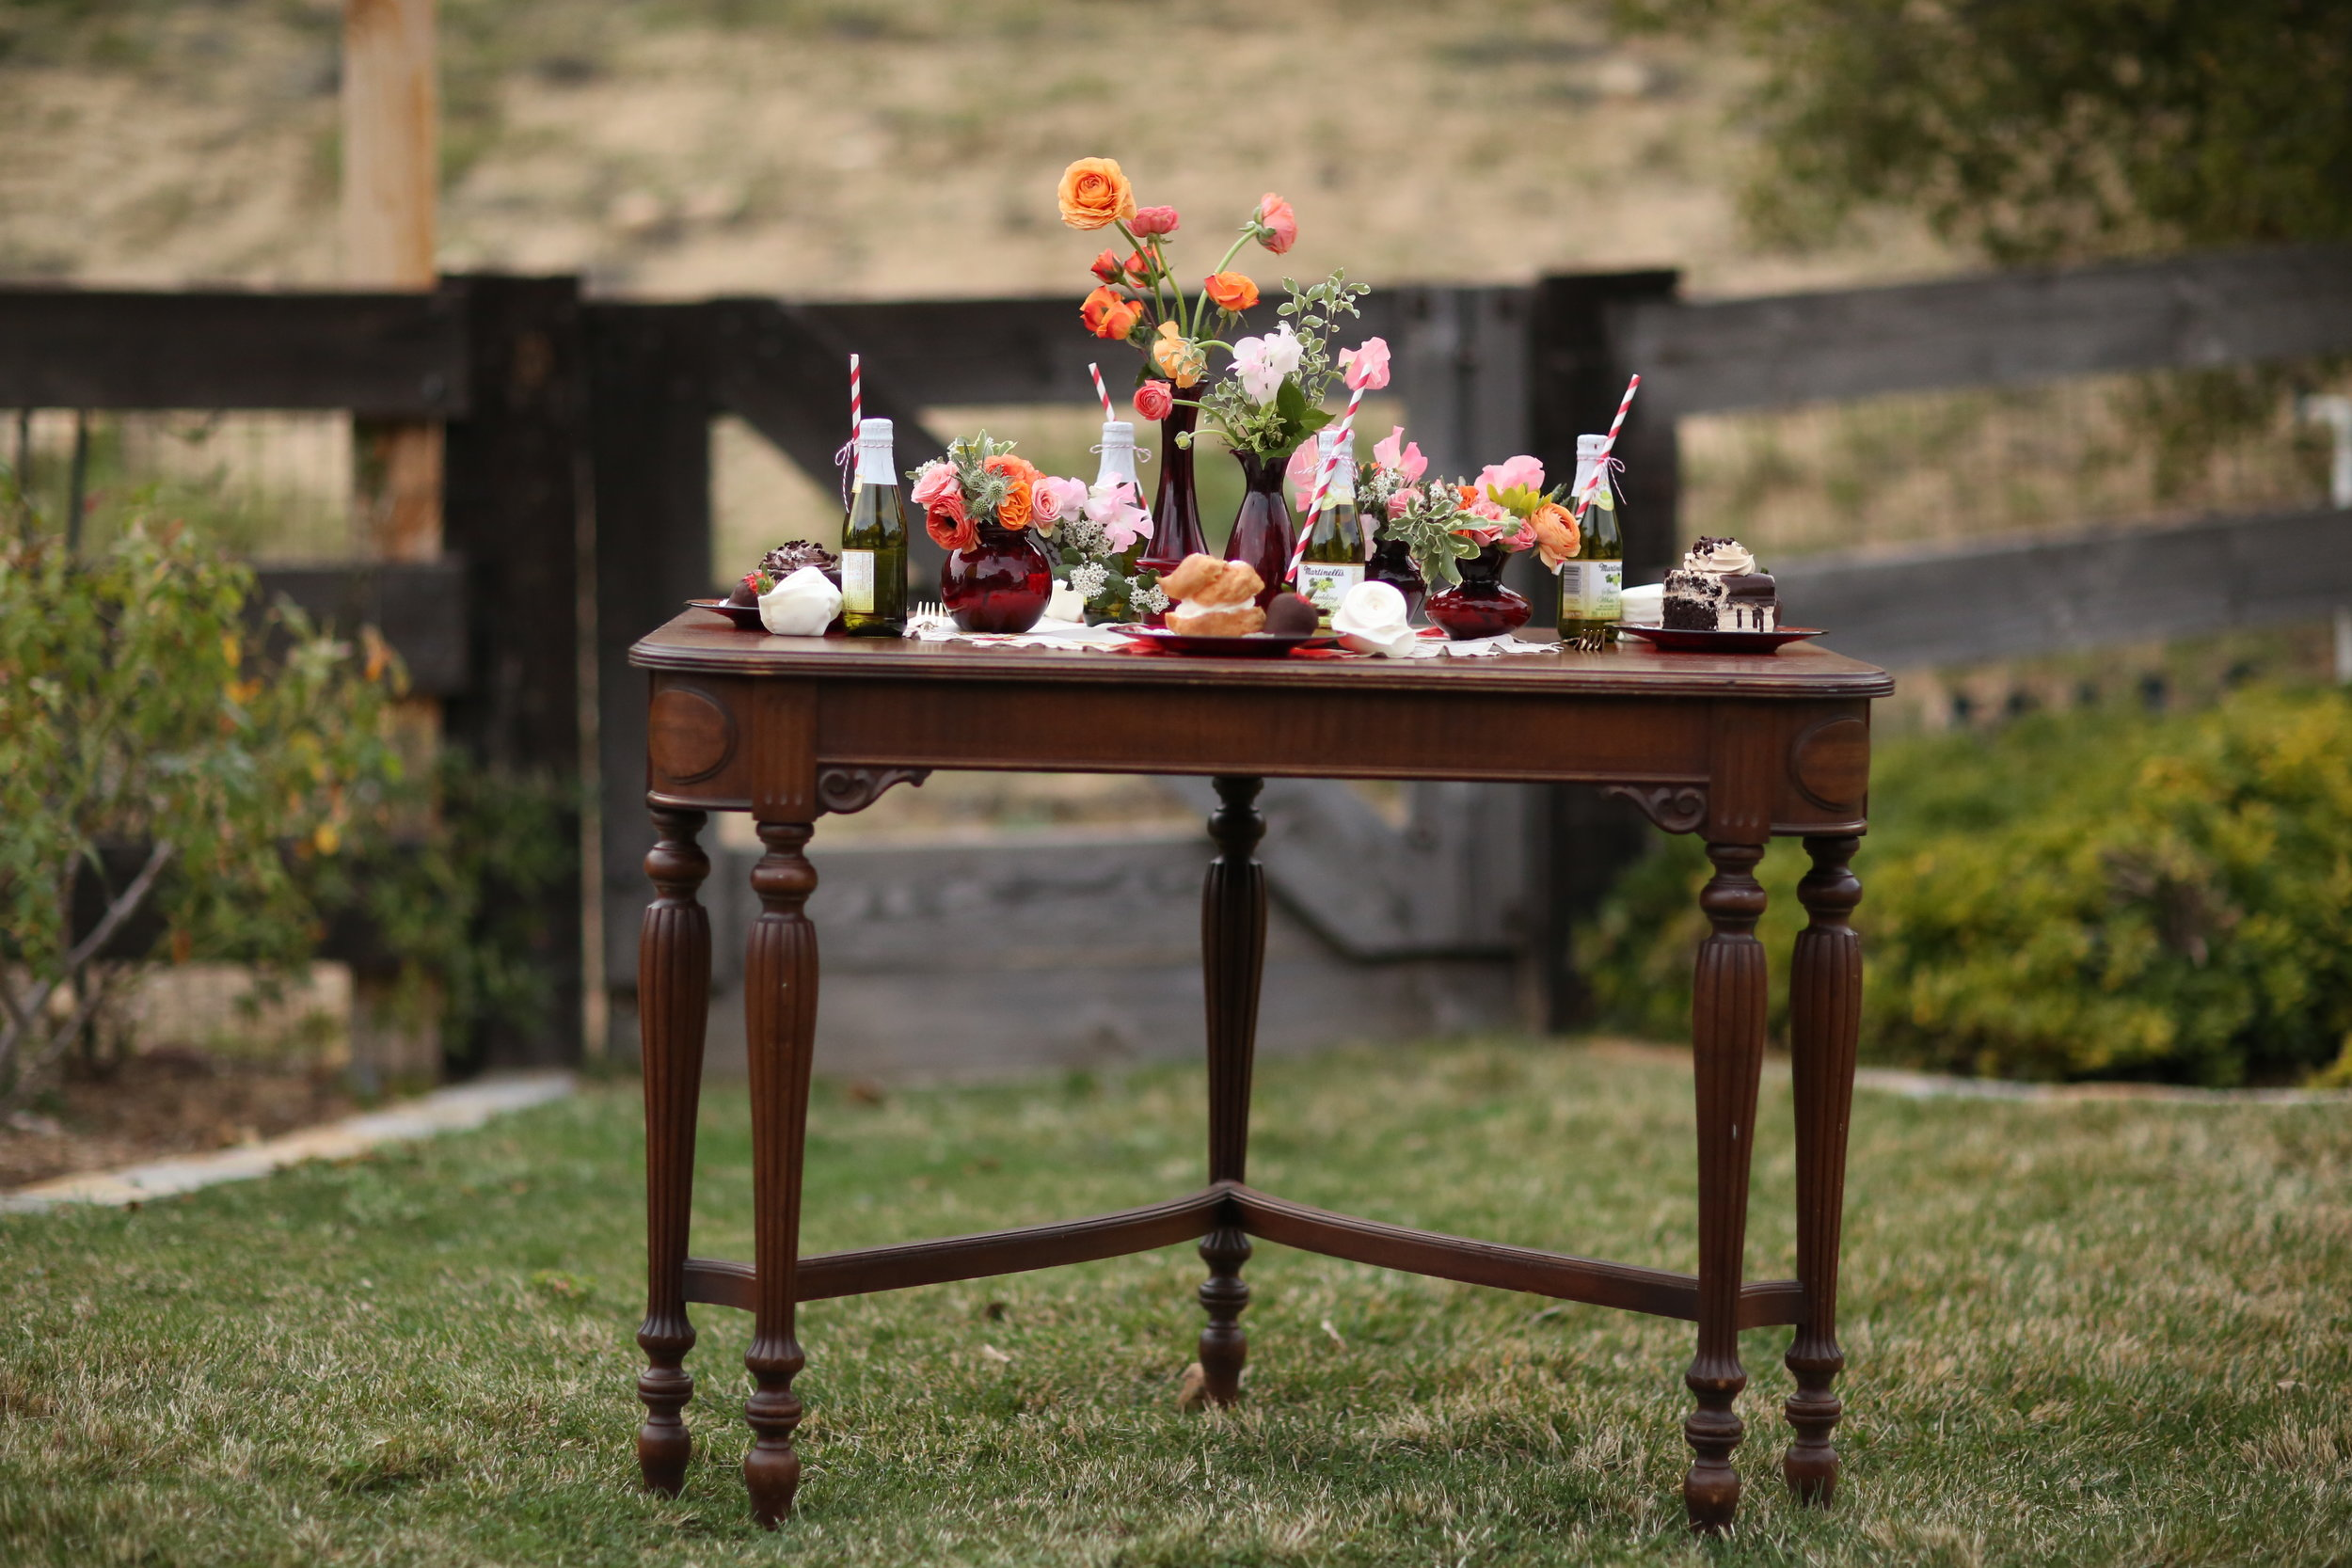 vintage oak dining table with spindle legs. Ruby glass vases and dessert plates with french pastries.